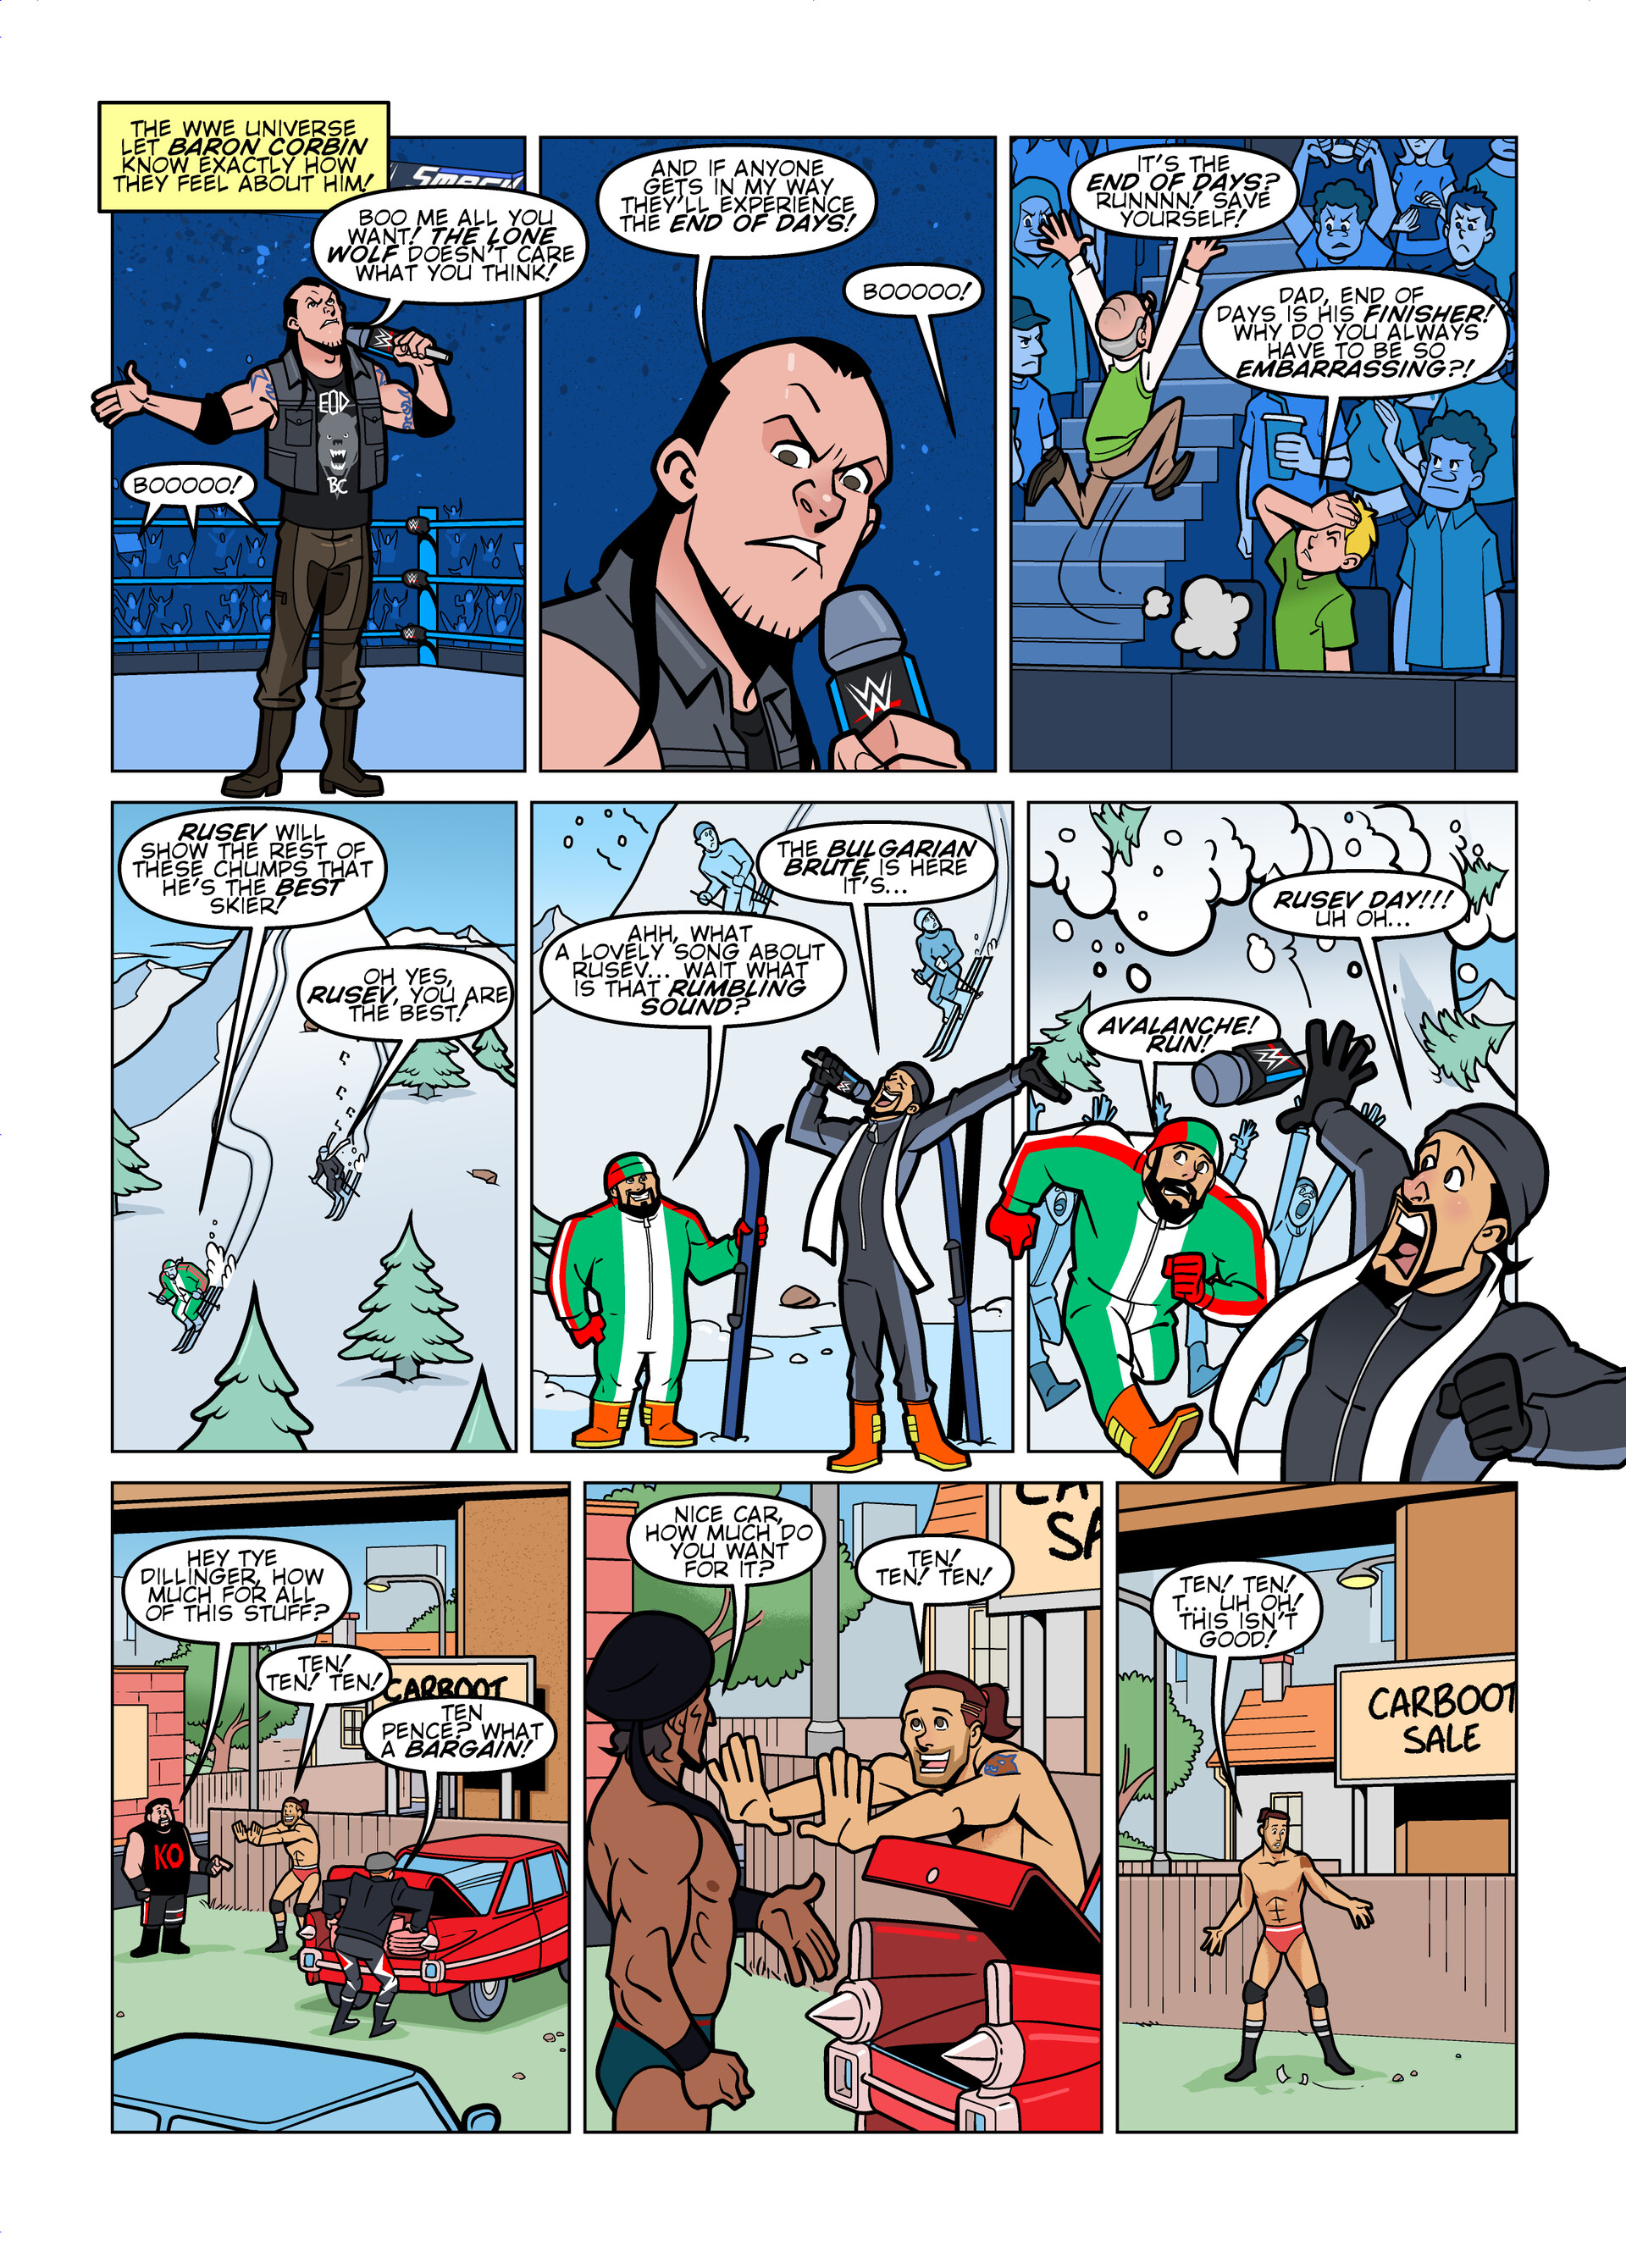 WWE Smackdown Live comic strips for WWE Kids Magazine #135